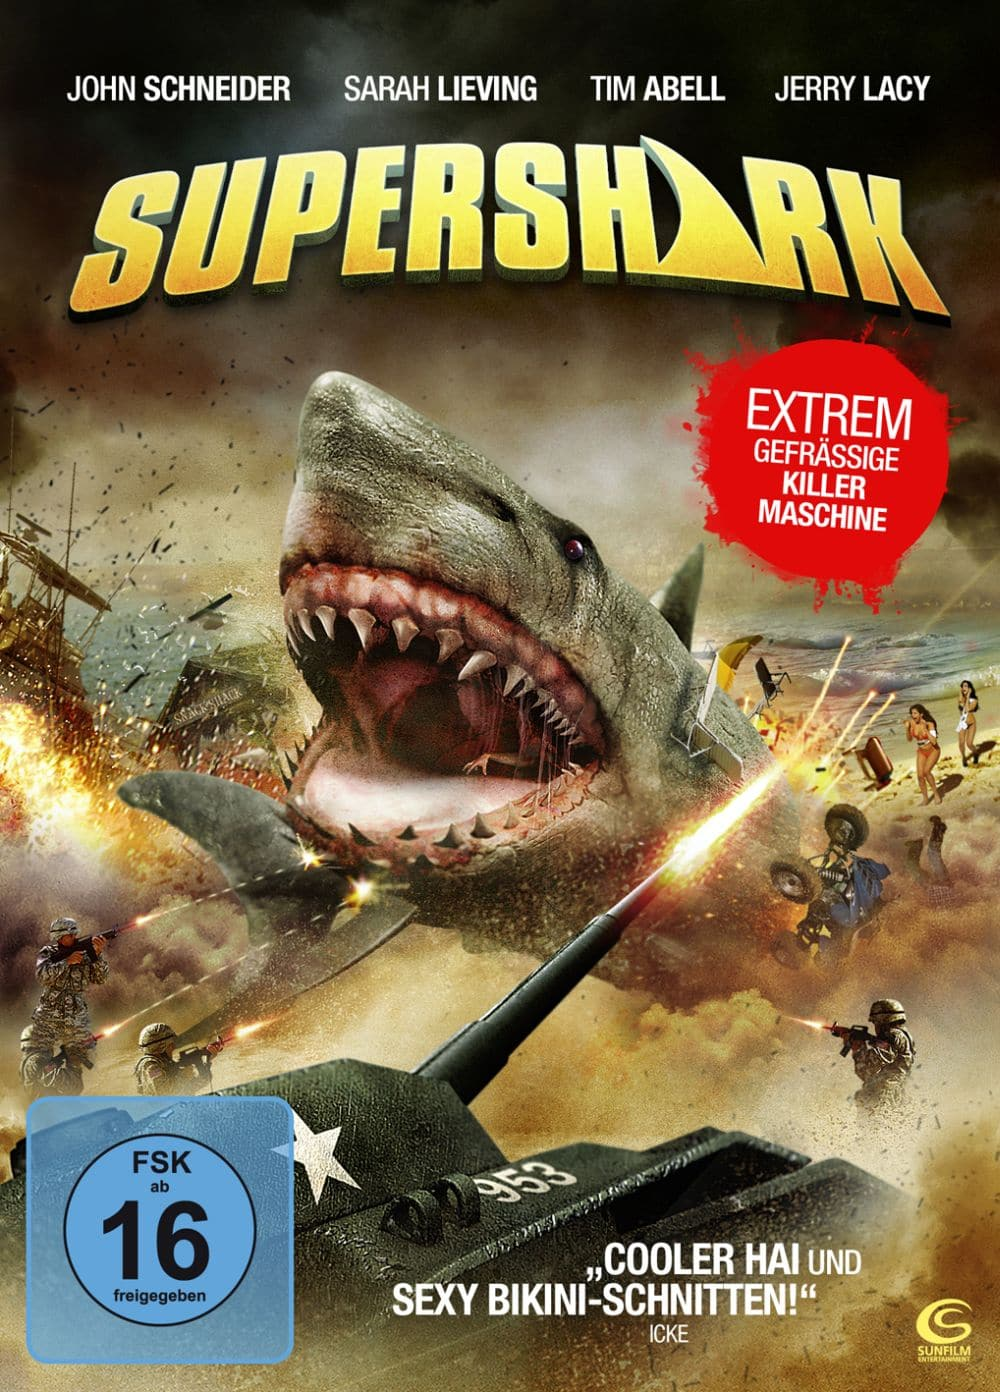 Supershark - Film 2011 - Scary-Movies.de